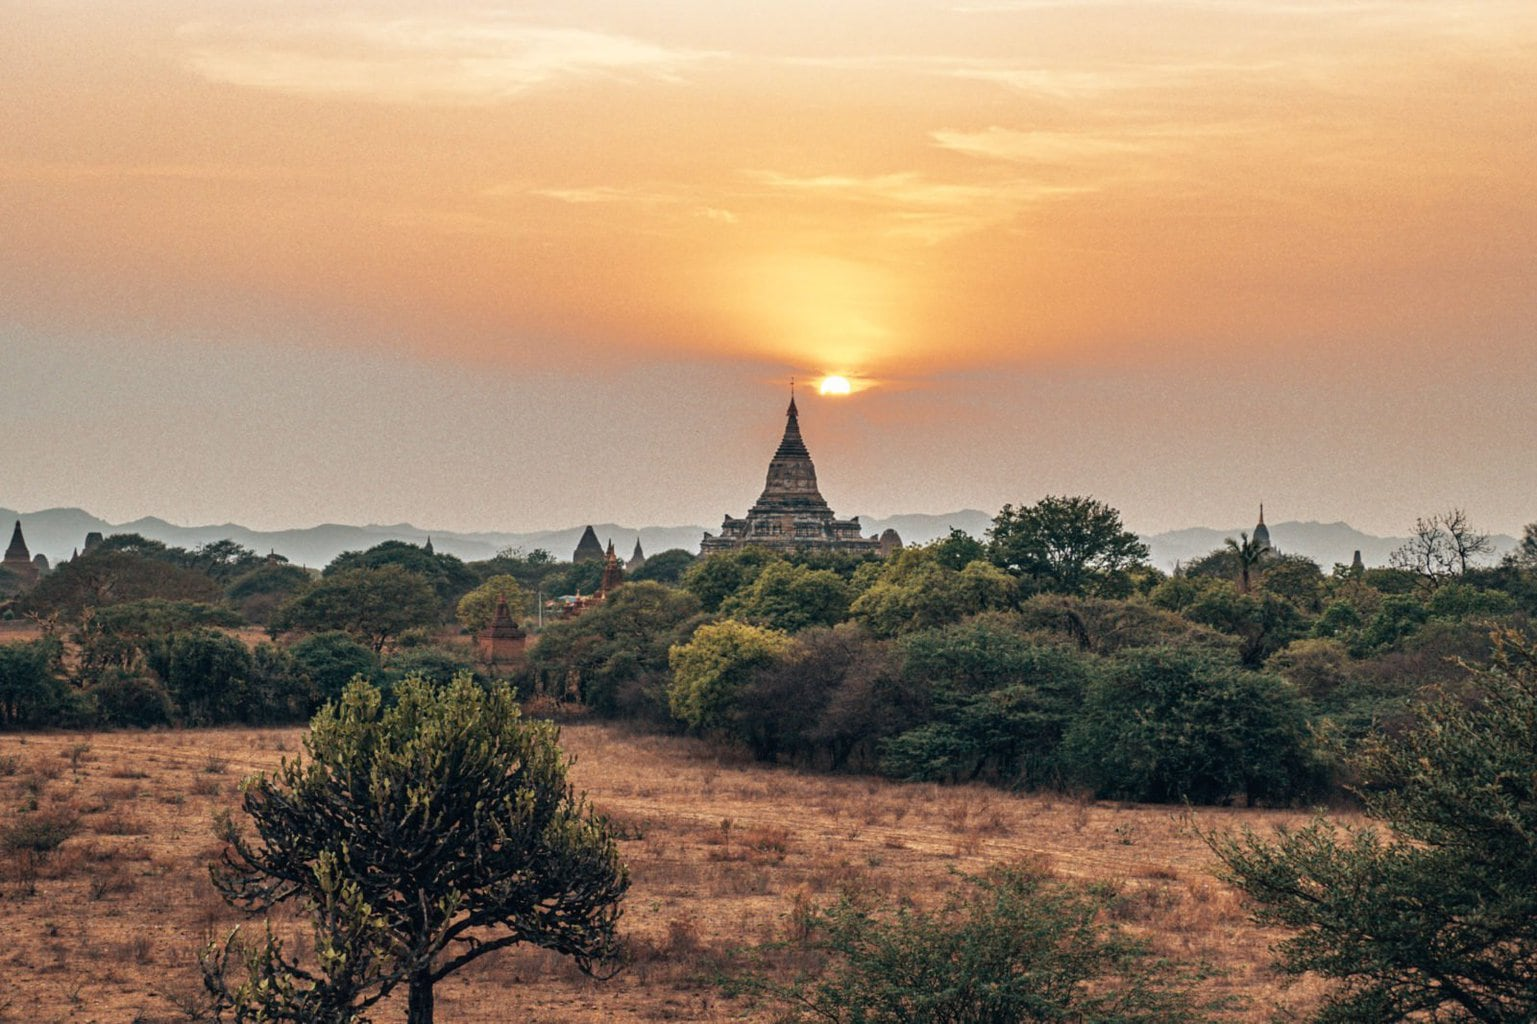 Sunrise over Shwesandaw temple Bagan